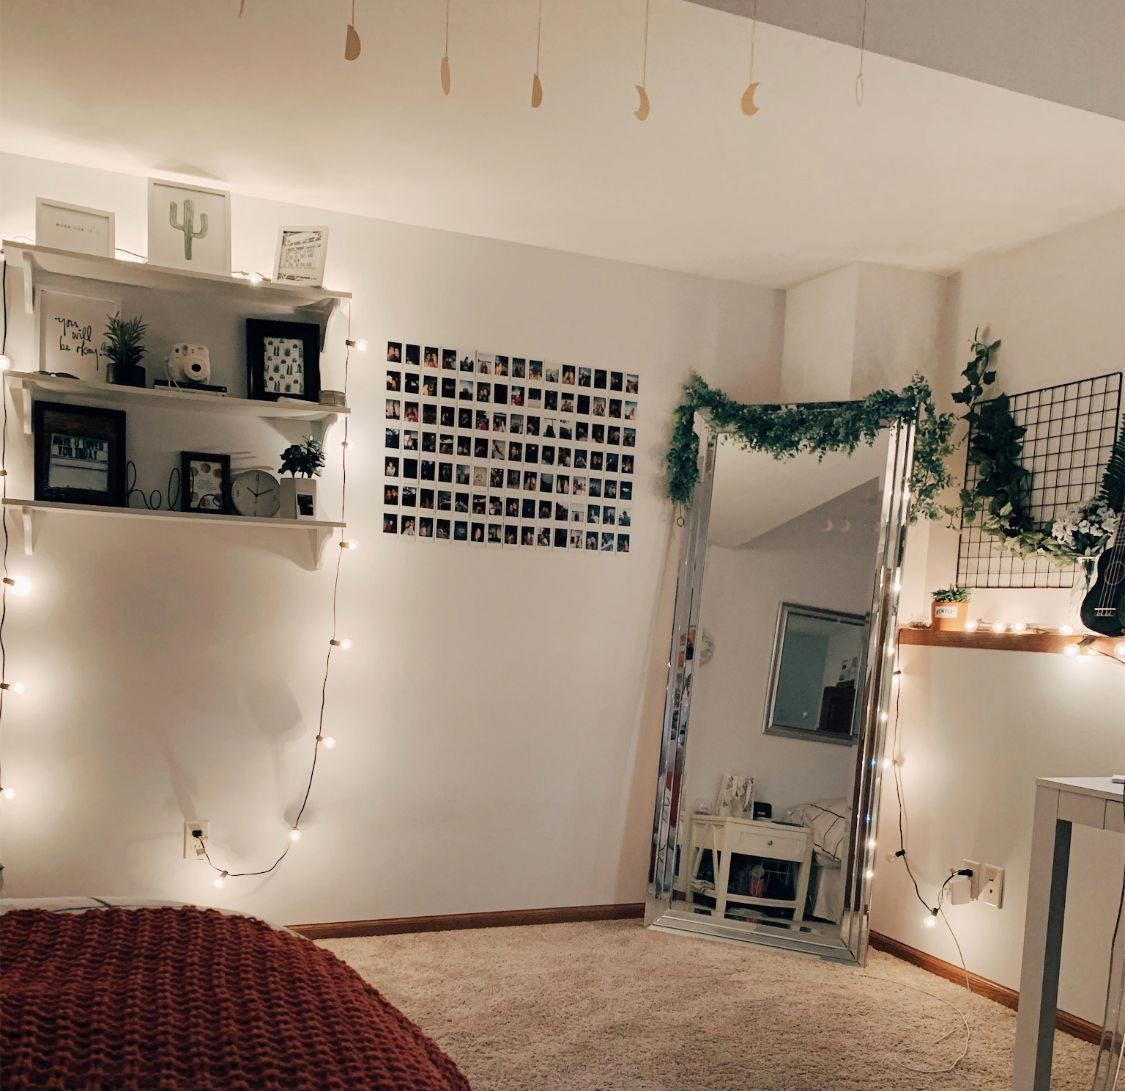 Tumblr Room: how to decorate with the style of the social network